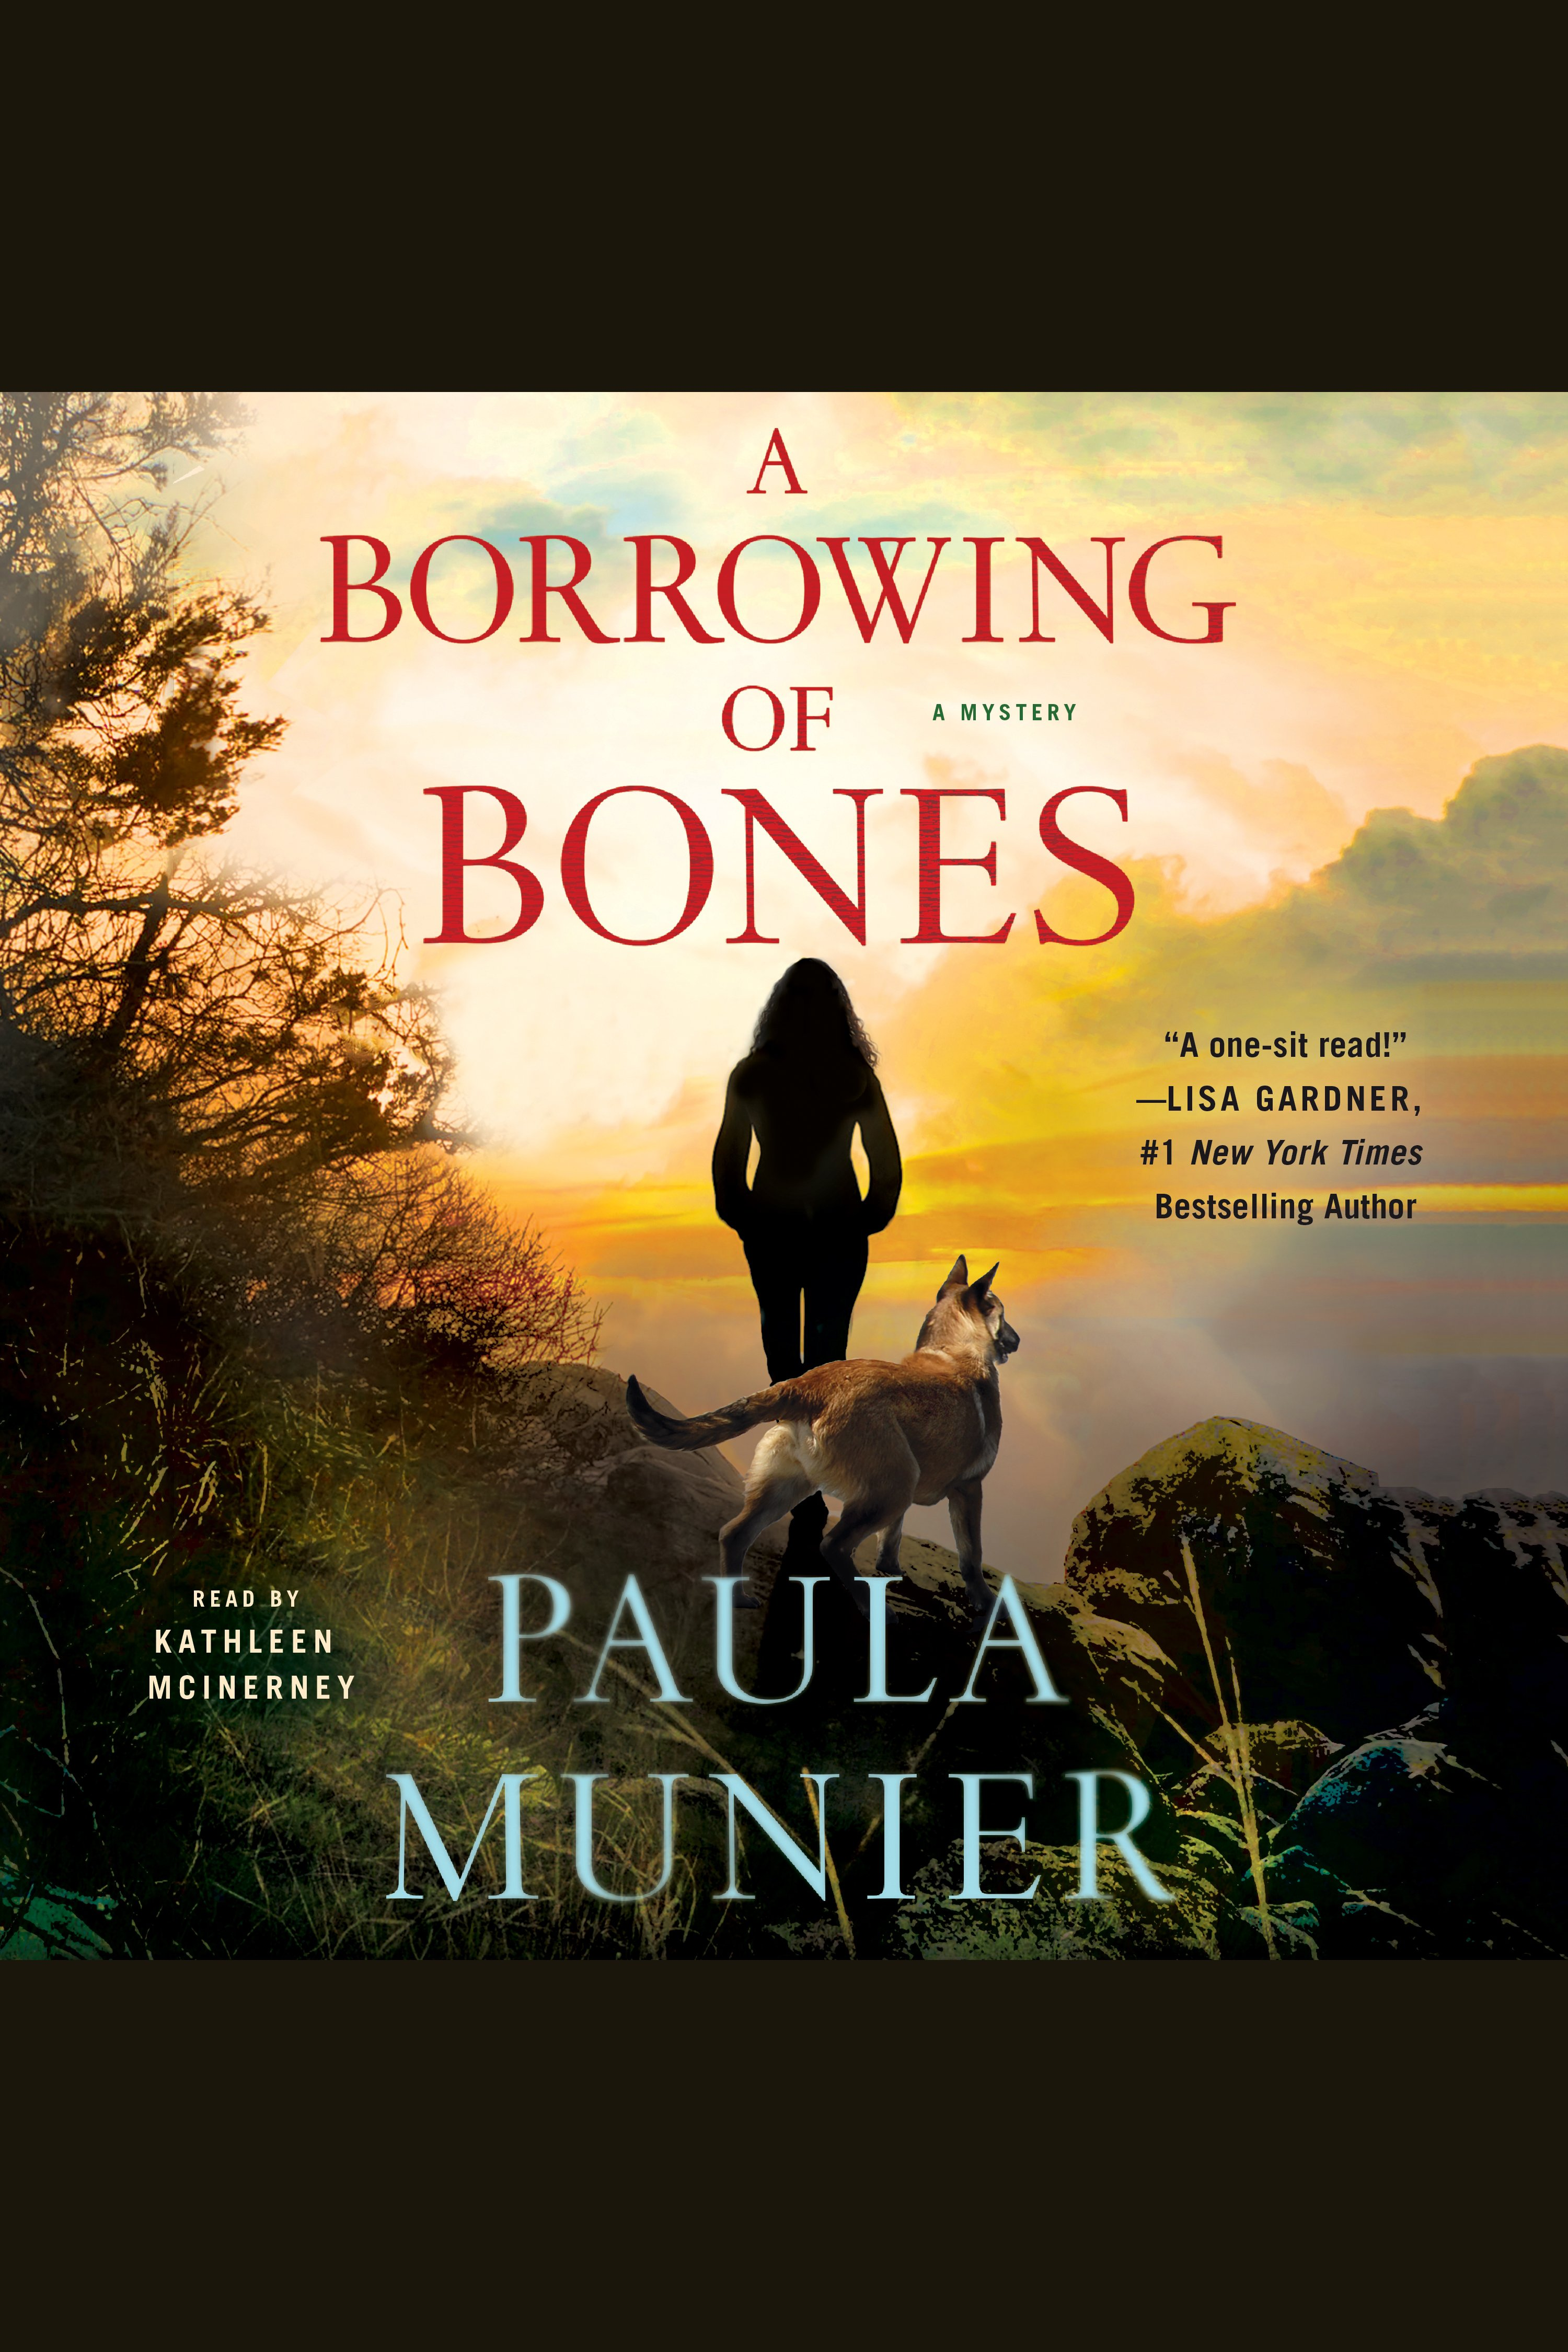 Borrowing of Bones, A [electronic resource] : A Mystery